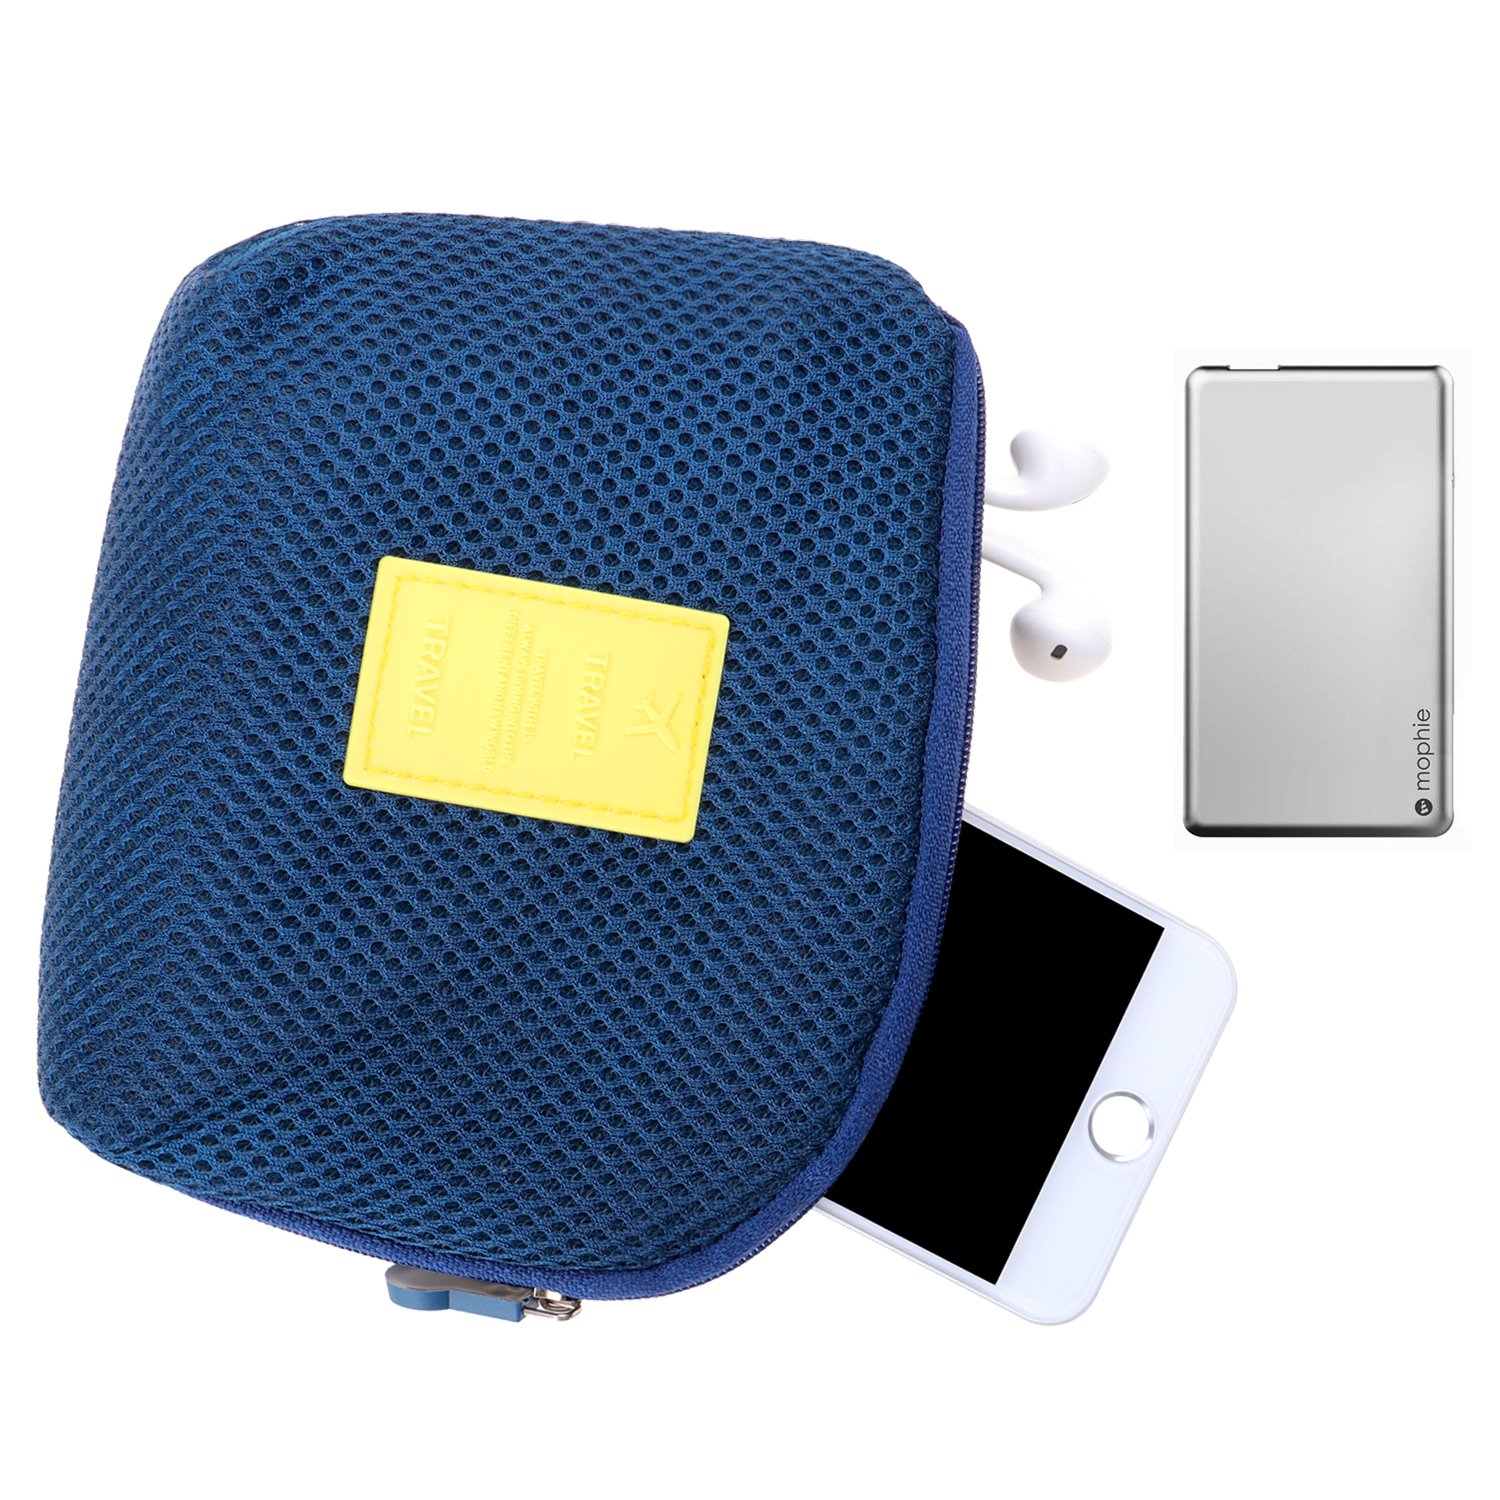 Happy Hours - Multifunction Shockproof Digital Storage Bag Pouch / Creative Makeup Smartphone Charger Headset Data Cable Case for Travel and Daily(Navy) HOTFFHHB